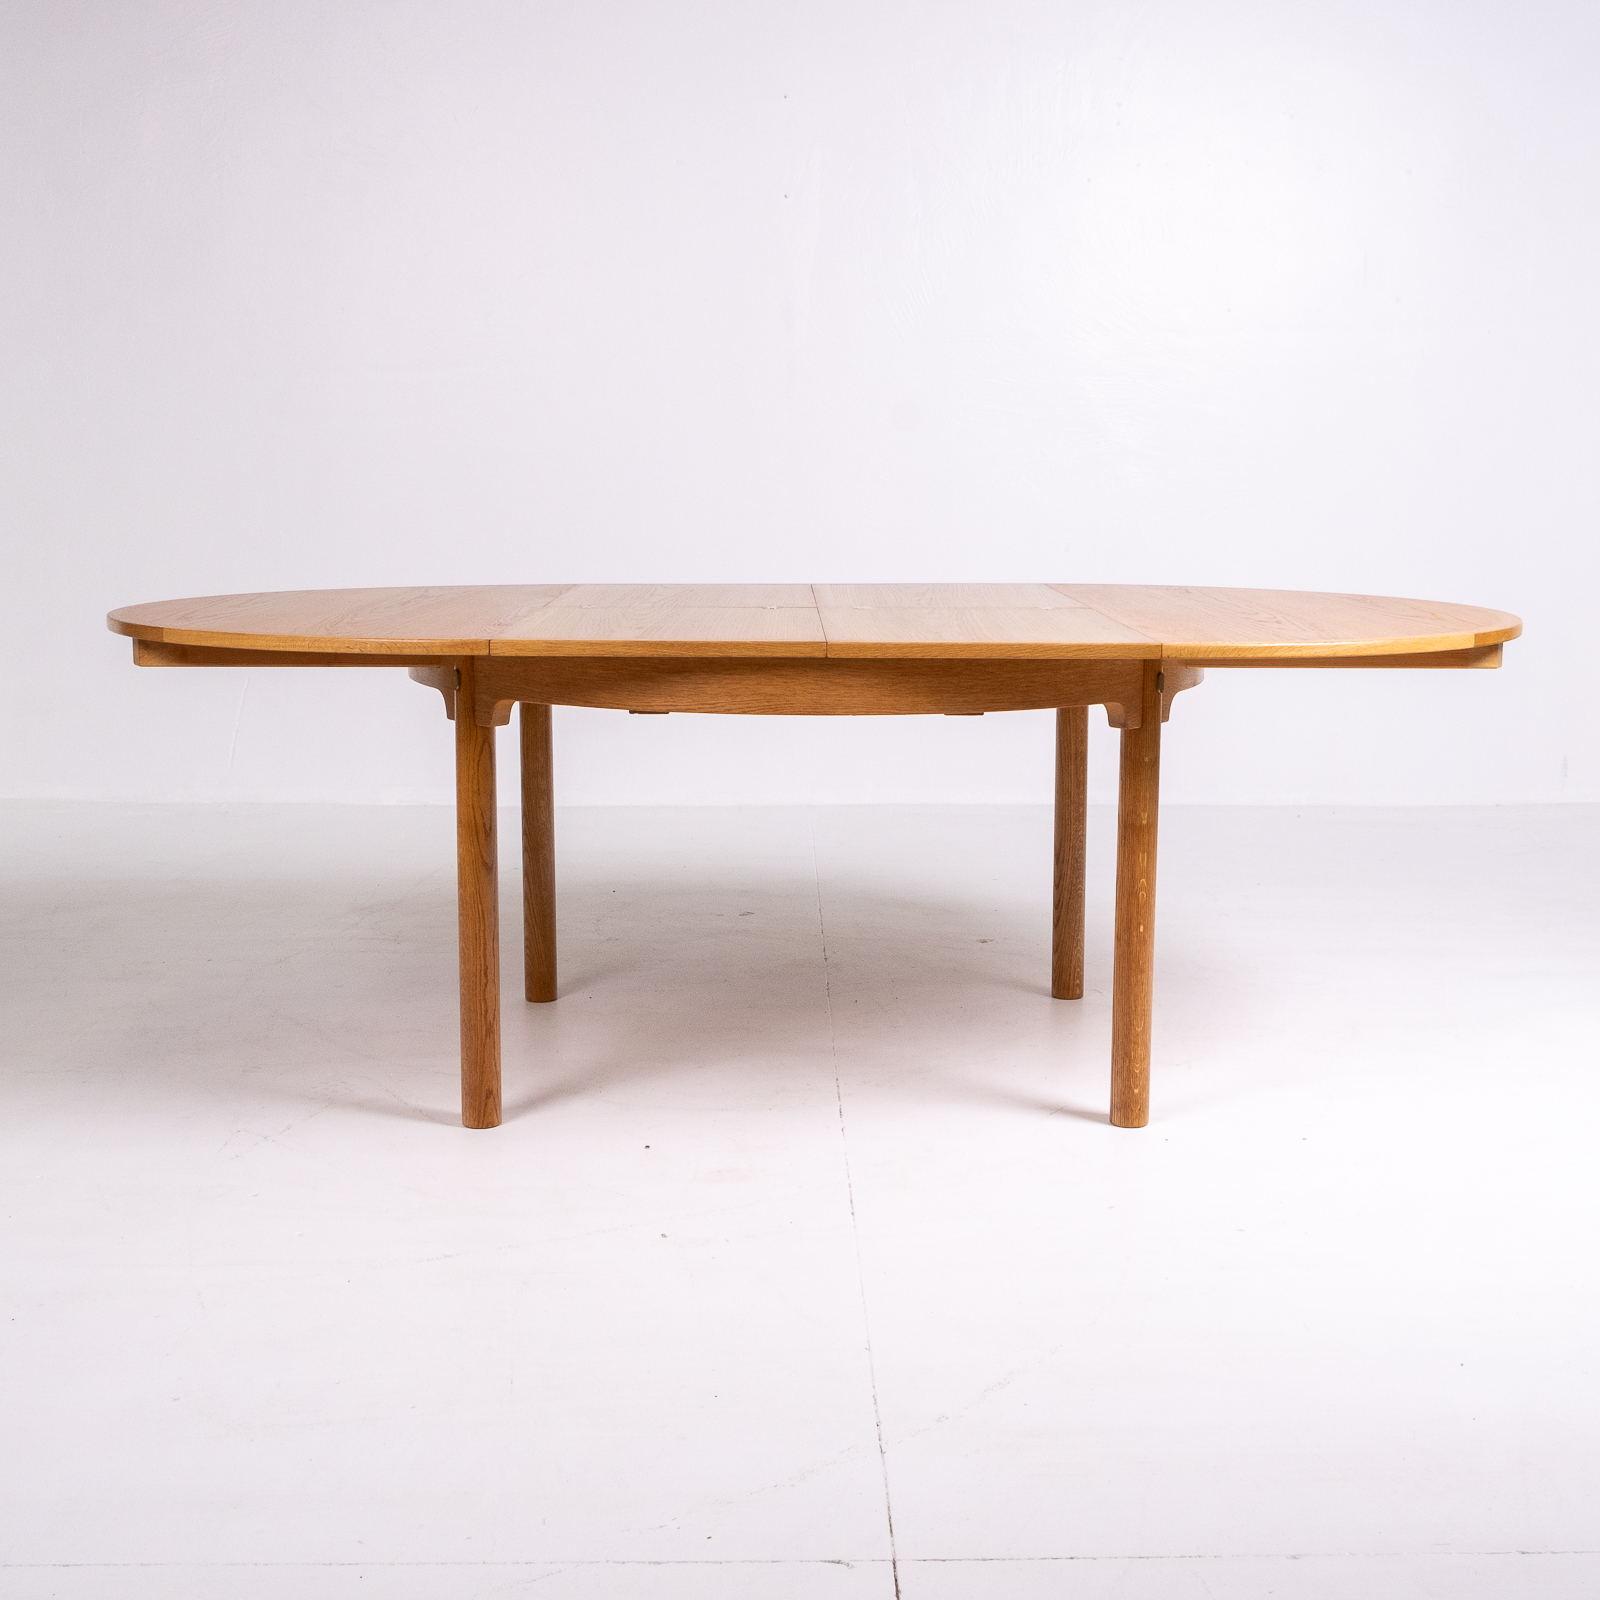 Round 140 Dining Table By Borge Mogensen For Karl Andersson & Söner In Oak With Butterfly Extensions, 1960s, Denmark77